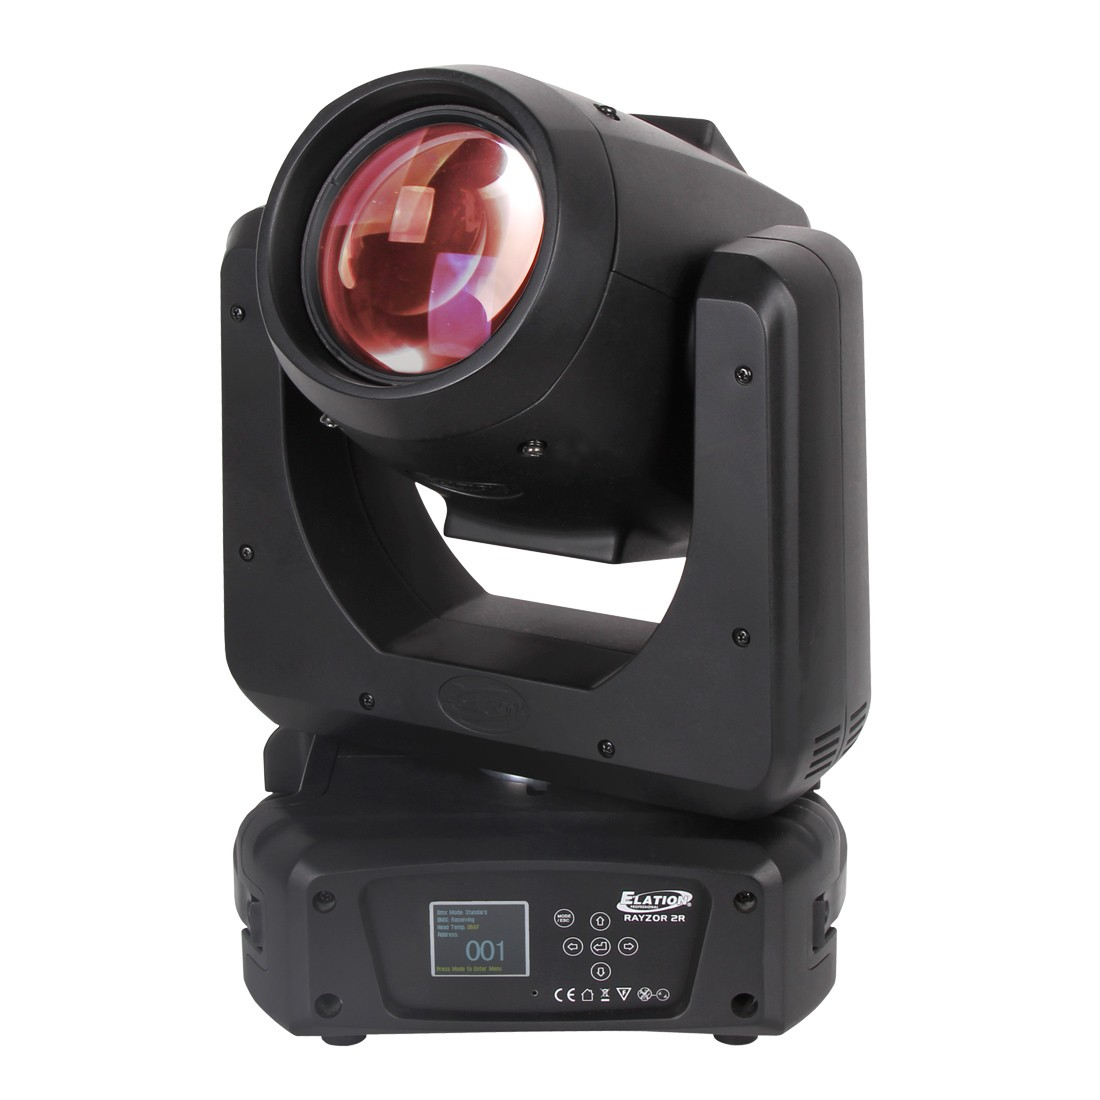 Elation RAYZOR BEAM 2R 130 Watts Moving Head with 6 Button Touch Control Panel (RAY536)